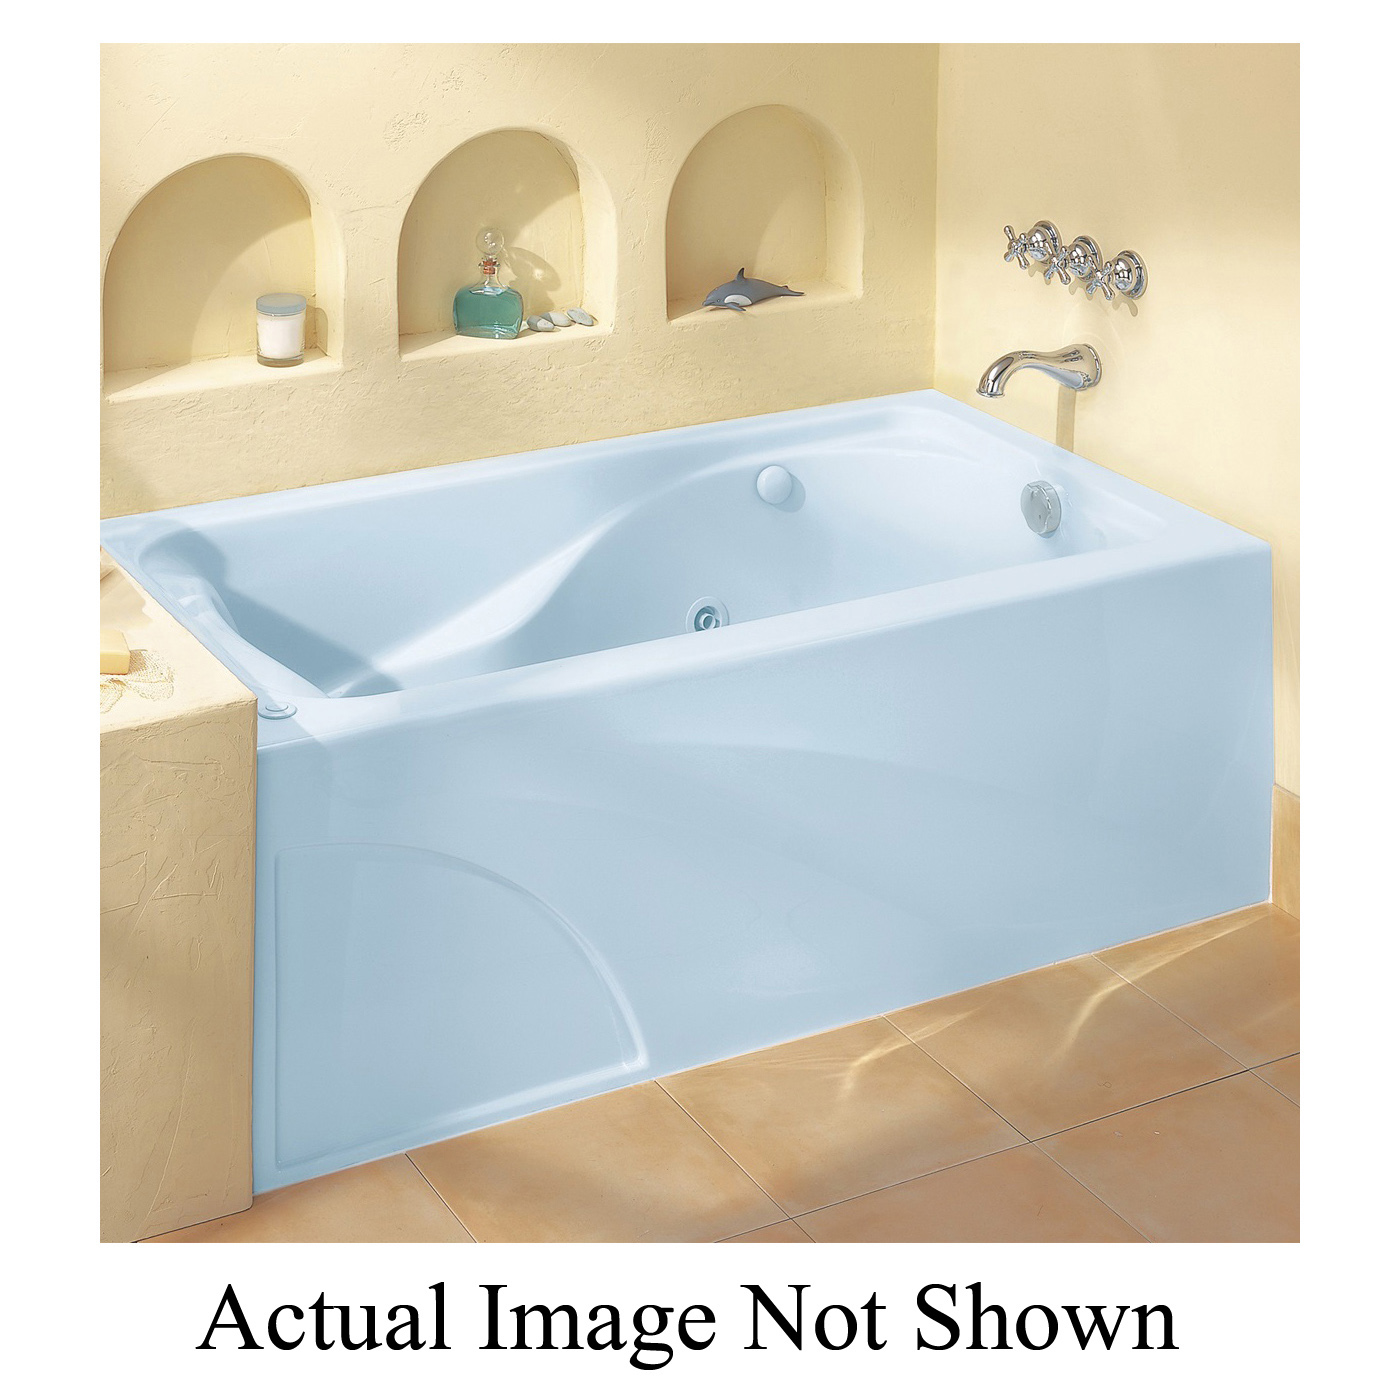 Consolidated Supply Co. | American Standard 2776 Cadet® Whirlpool ...